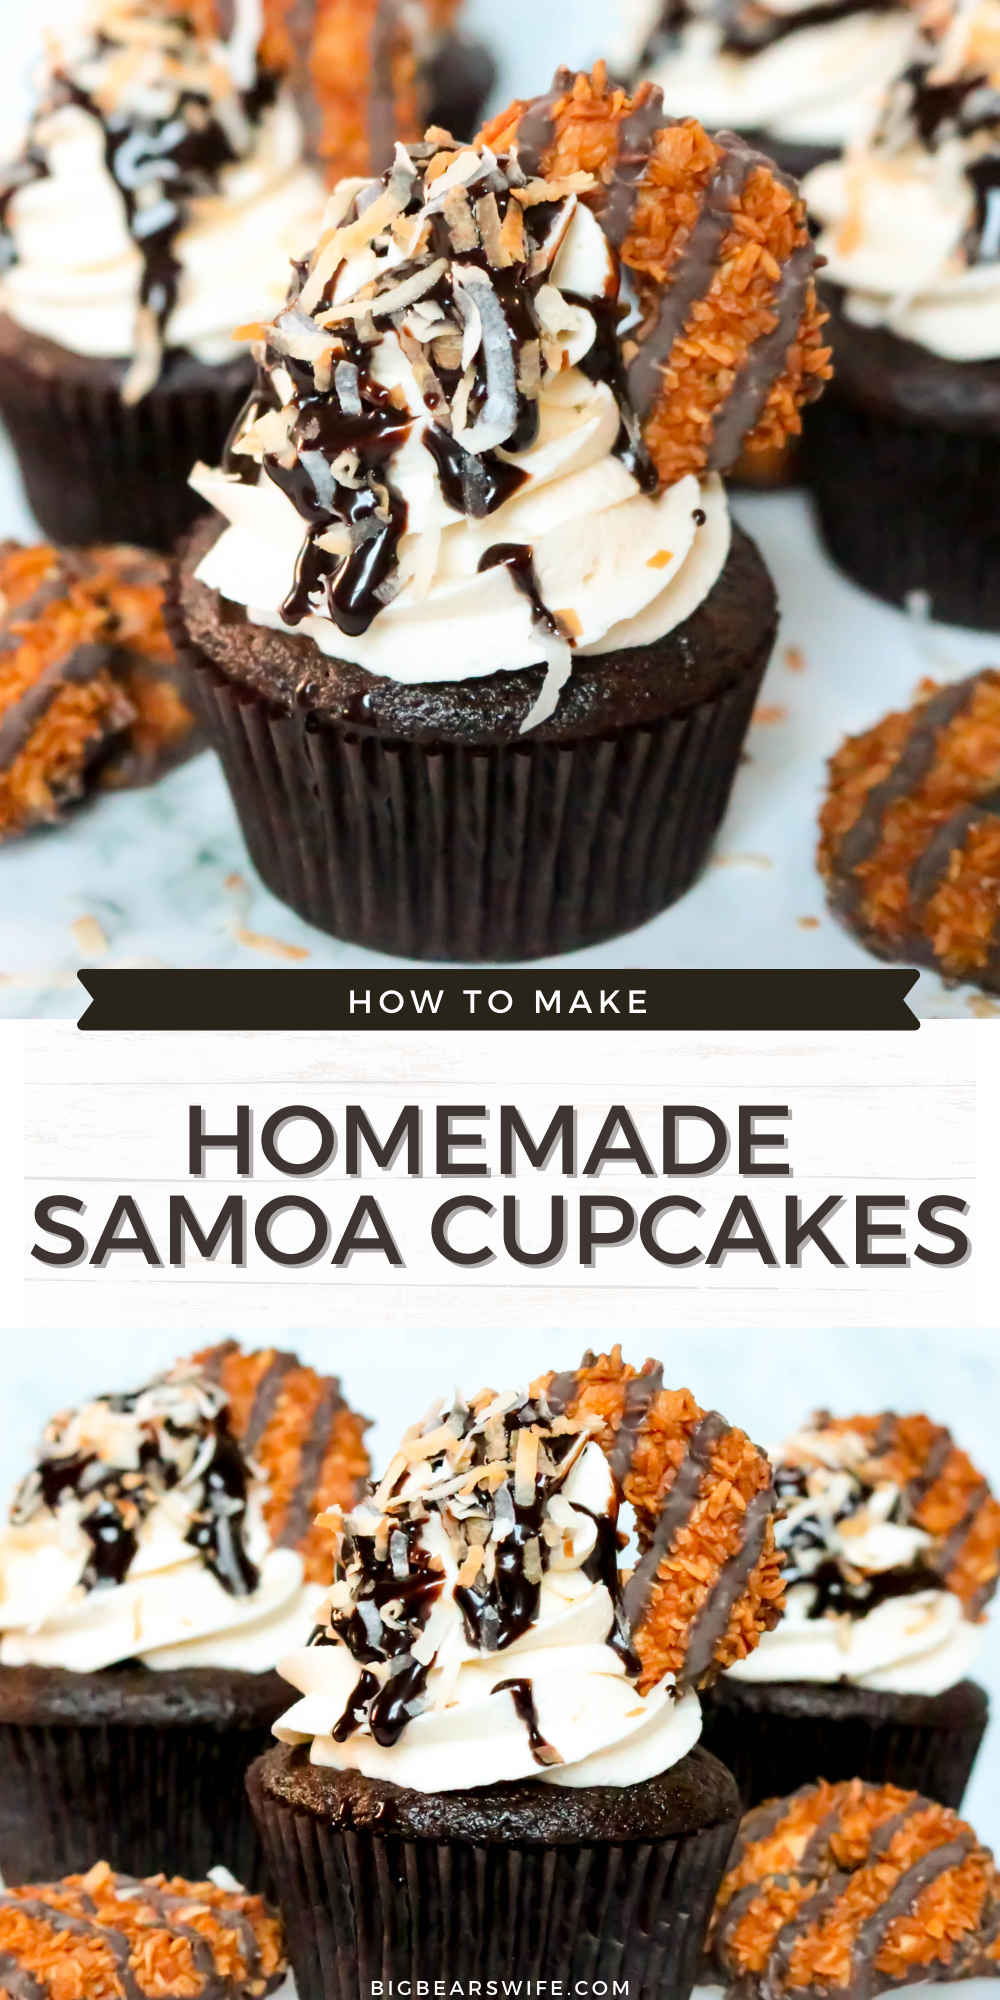 Turn your favorite Samoa cookie Girl Scout cookies into a homemade treat with these Samoa Cupcakes! These chocolate cupcakes have a caramel frosting and are topped with chocolate, toasted coconut and Samoa Cookies!    via @bigbearswife